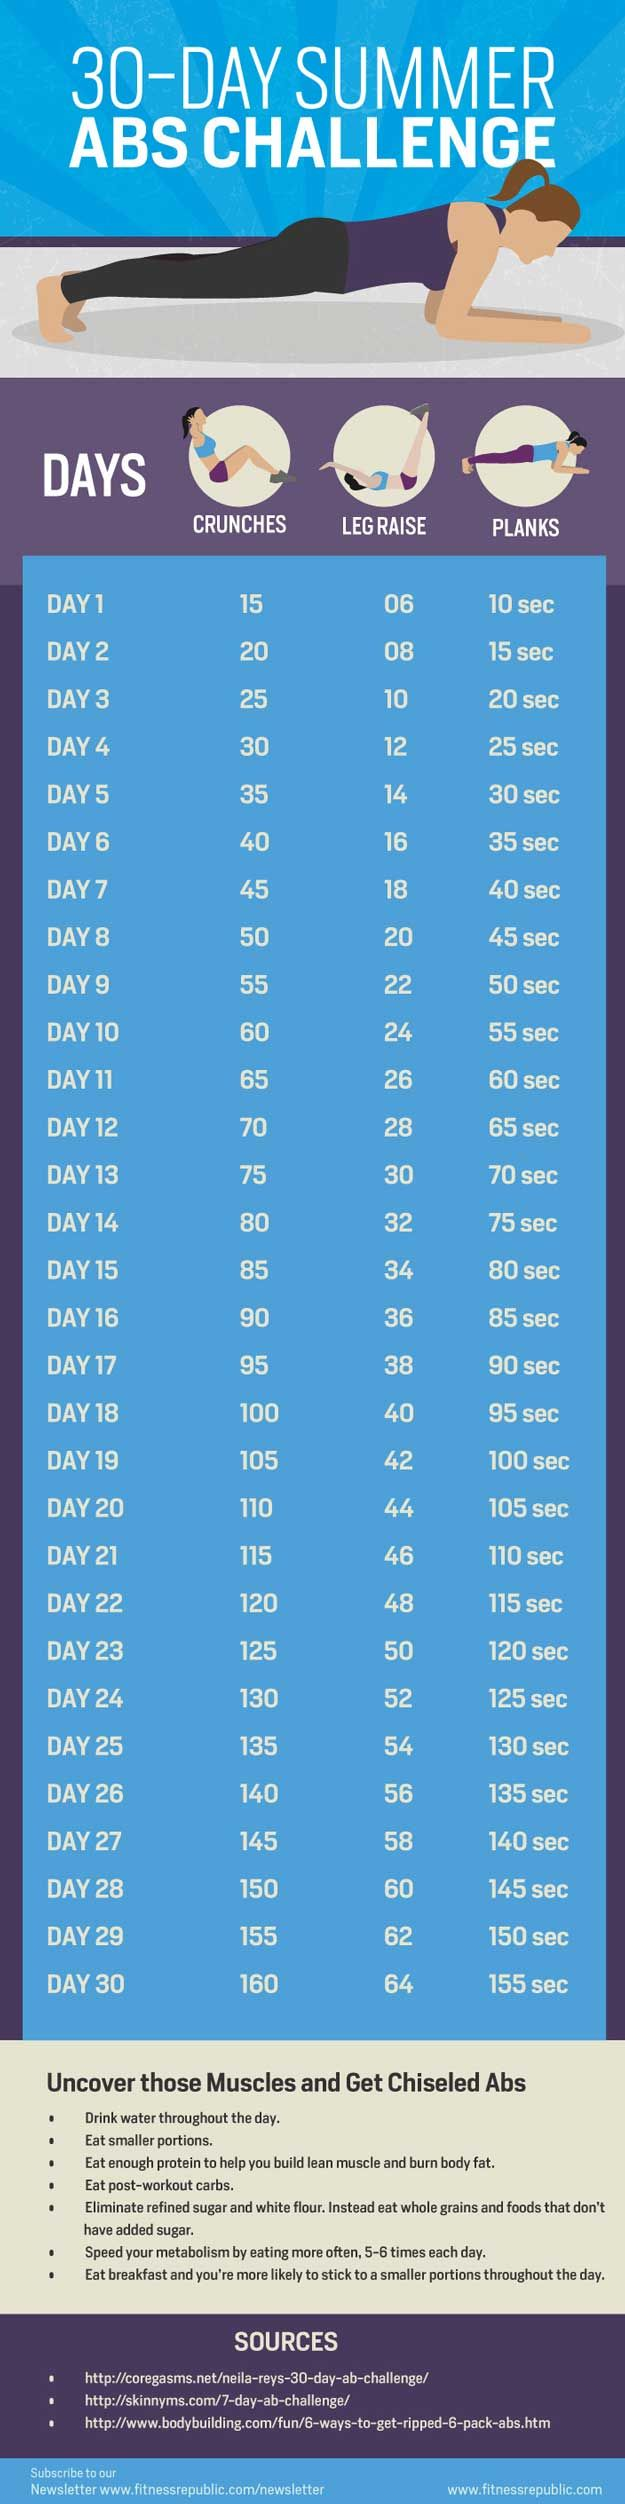 30-Day Summer Abs Challenge | 14 Best Fitness Workouts for Head to Toe Toning, c...